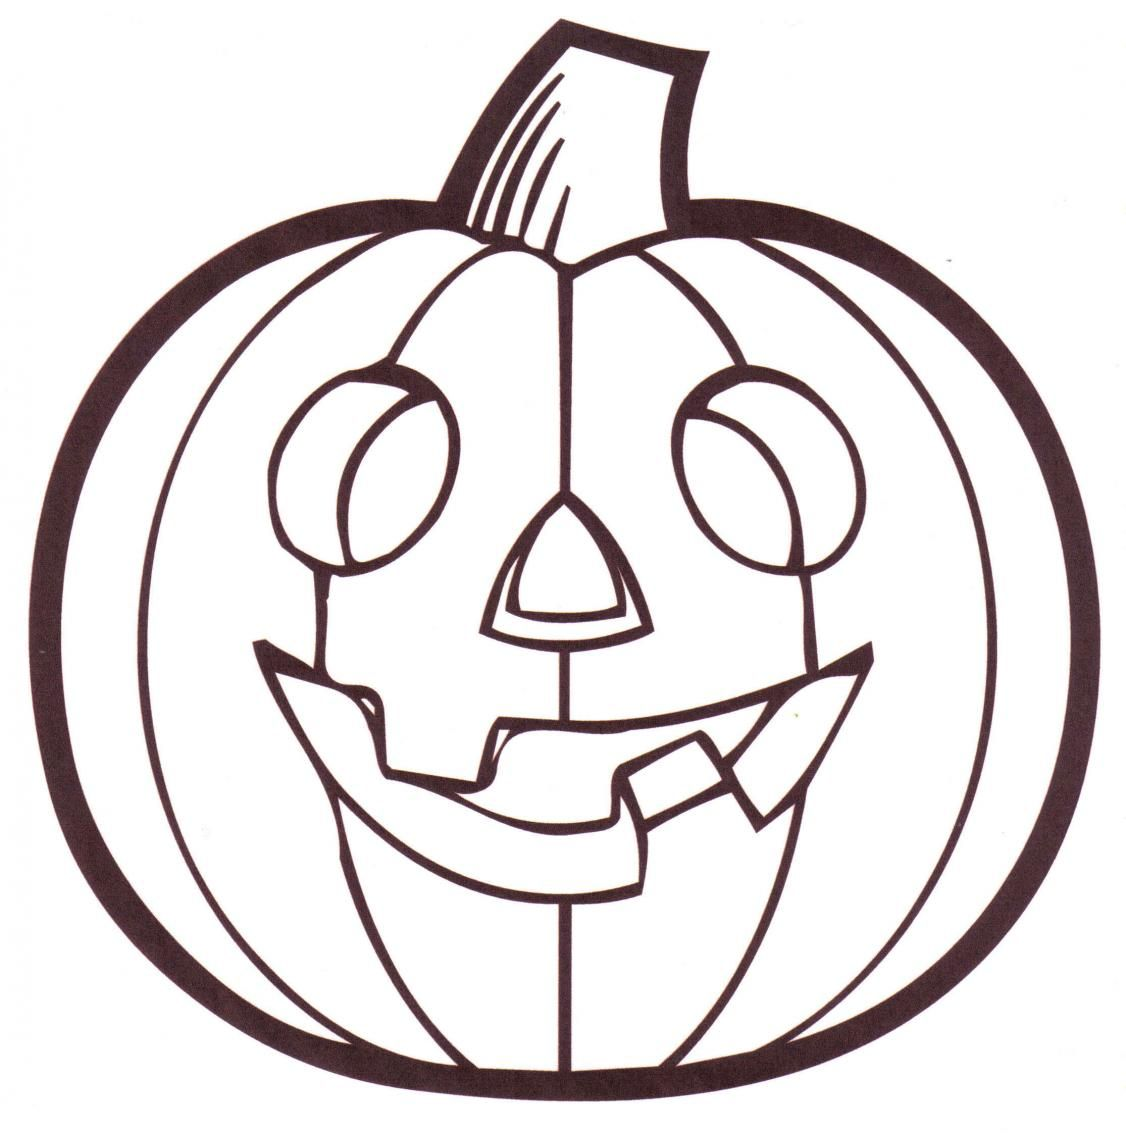 Uncategorized Drawings Of Pumpkins we have compiled a set of high quality pumpkin coloring pages featuring pumpkins different